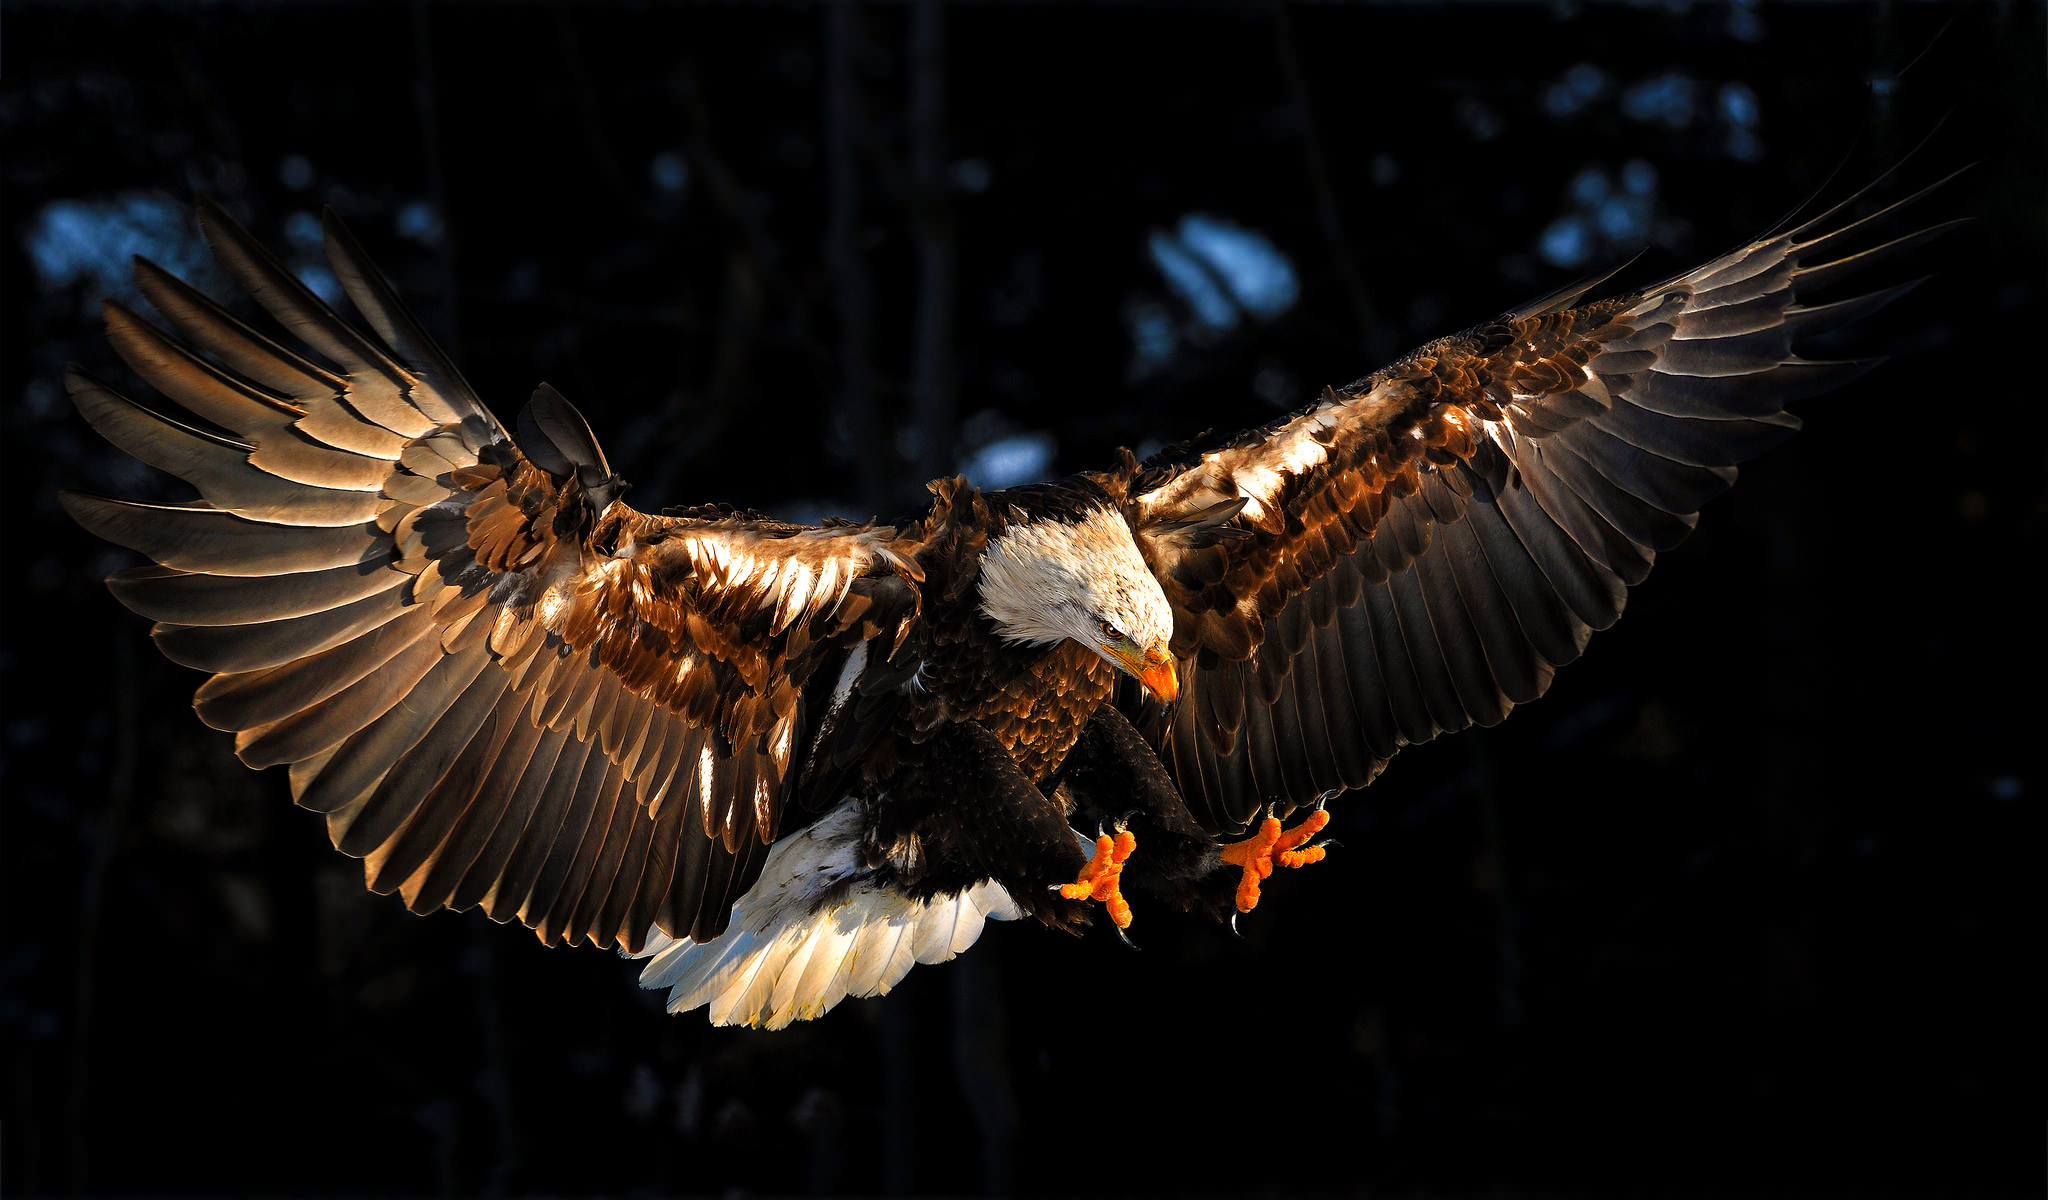 eagle 1280x1024 wallpaper - photo #35